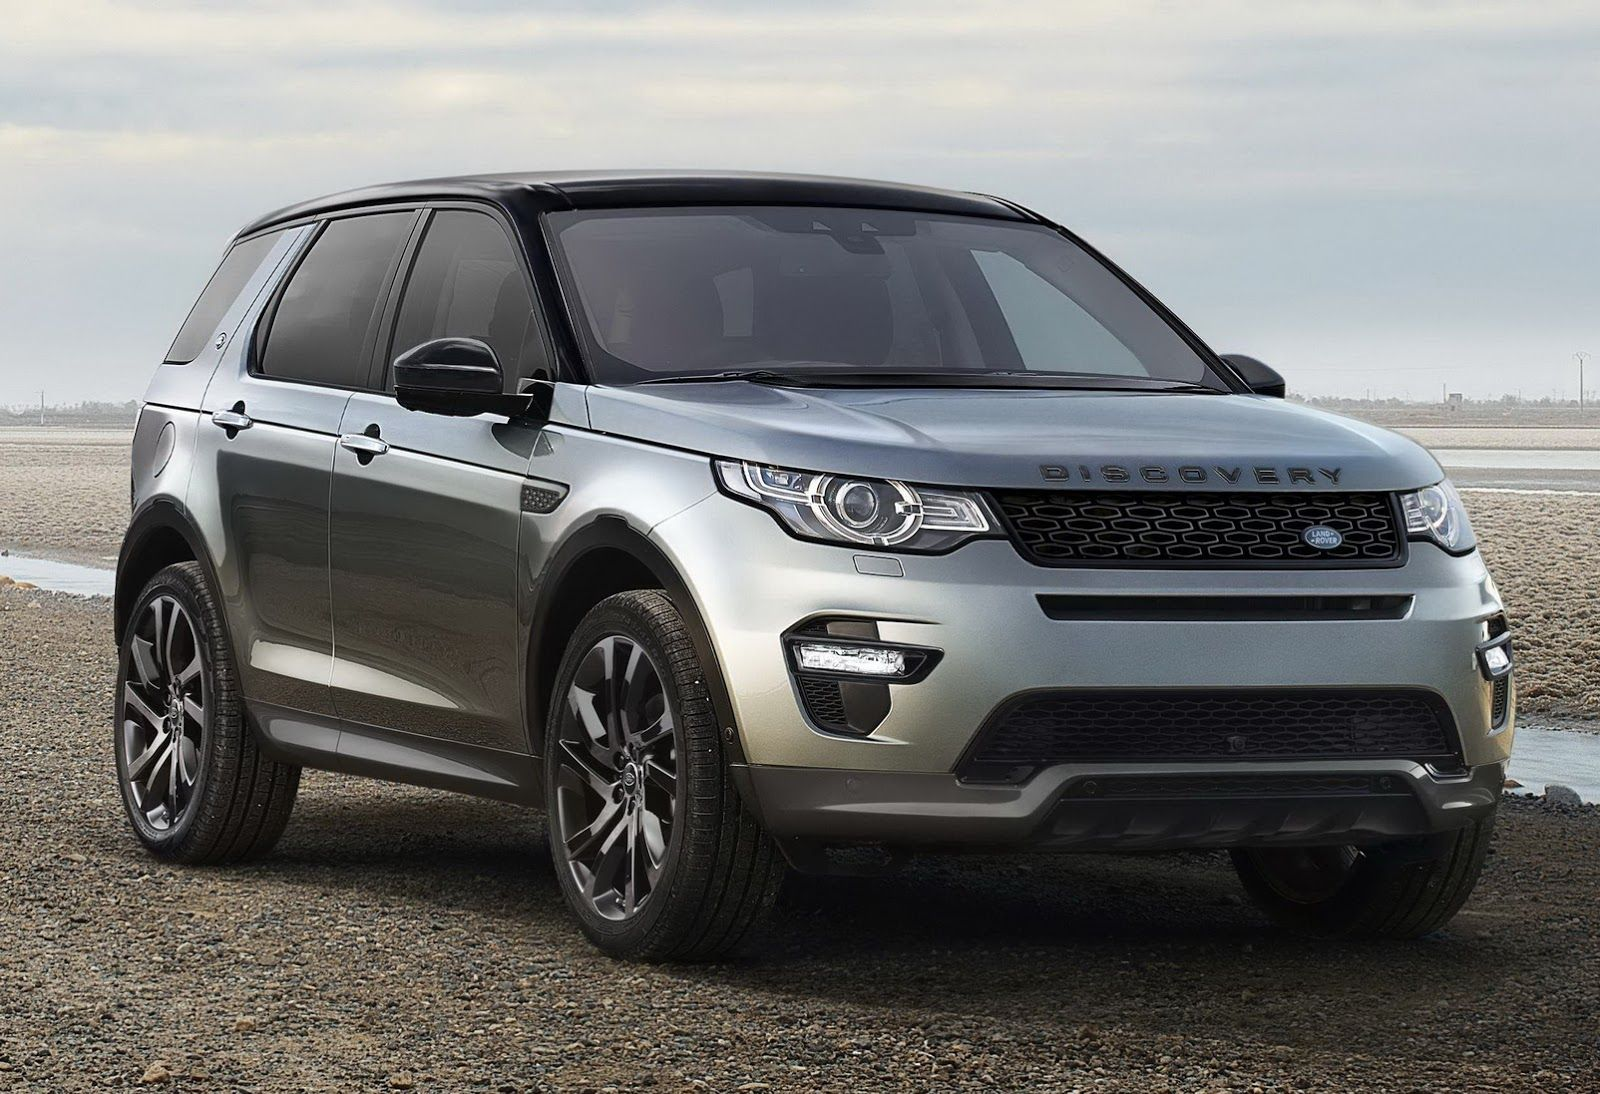 2016 land rover discovery sport s hse lux the exterior of the discovery sports